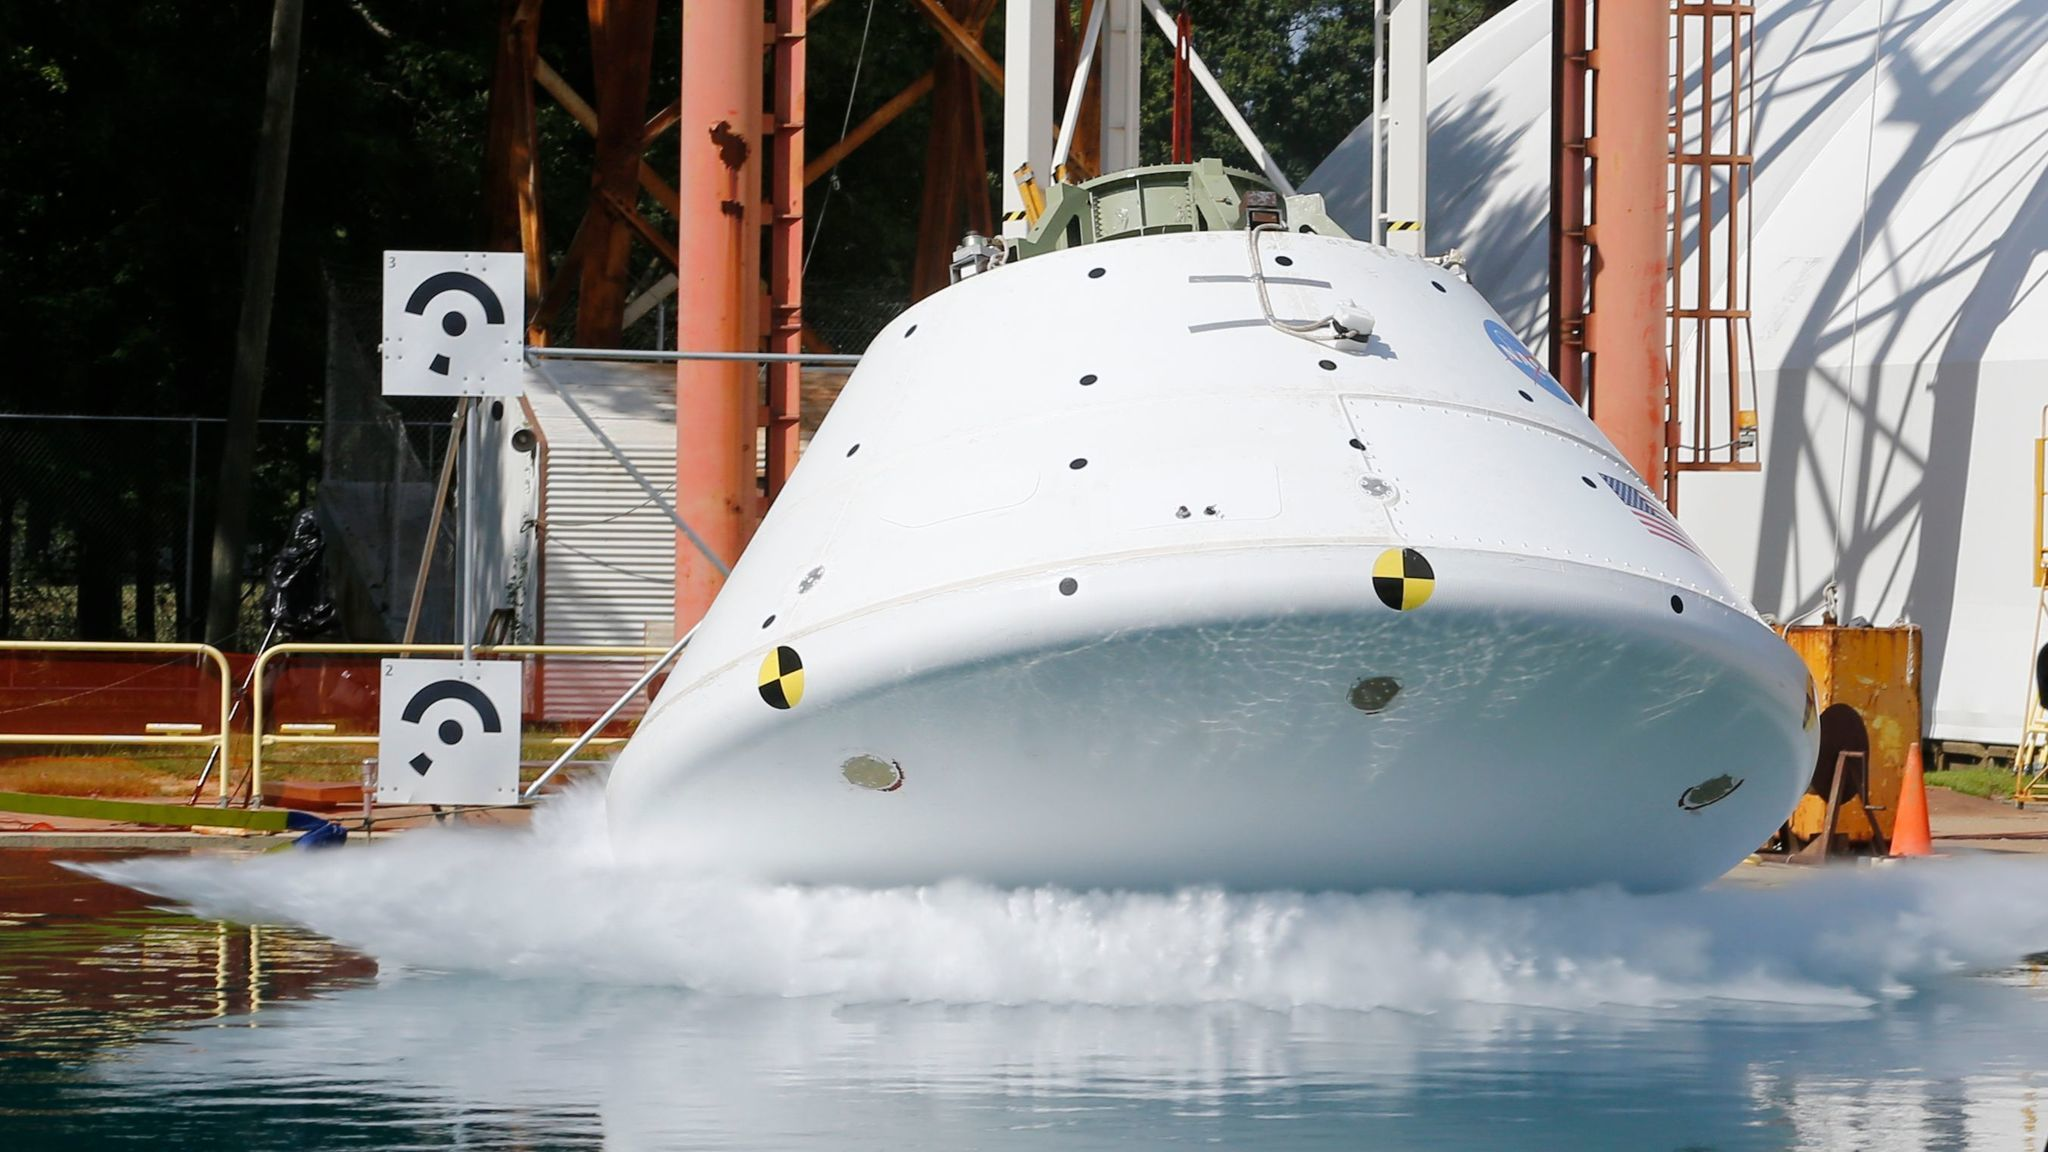 A mockup of NASA's Orion, which is designed to eventually travel to Mars, hits the water in a simulated ocean splashdown test at NASA Langley Research Center in Hampton, Va.